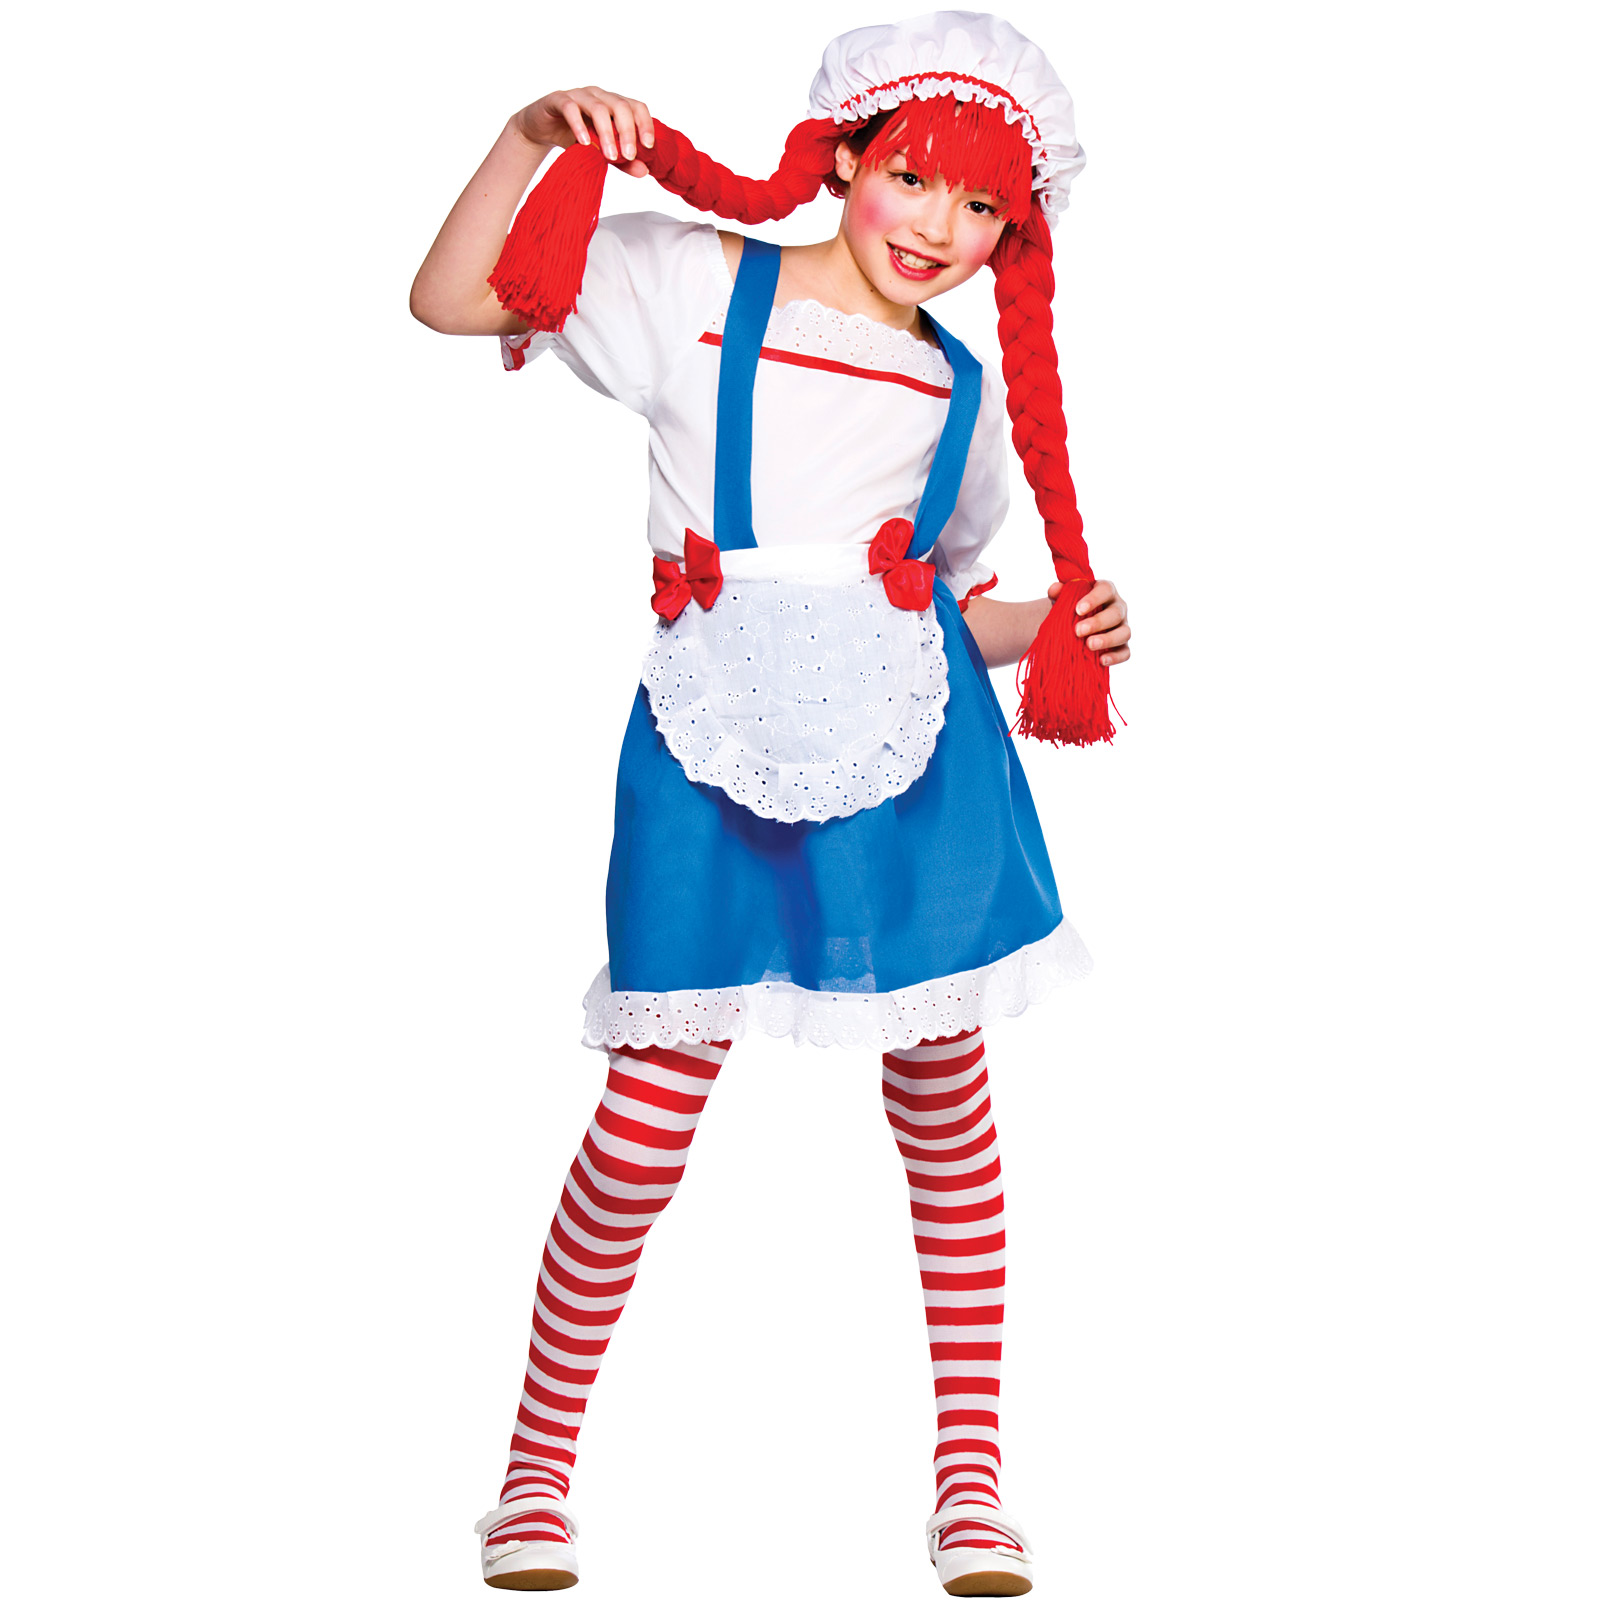 Girls Little Rag Doll Costume Fancy Dress Up Party Halloween Outfit